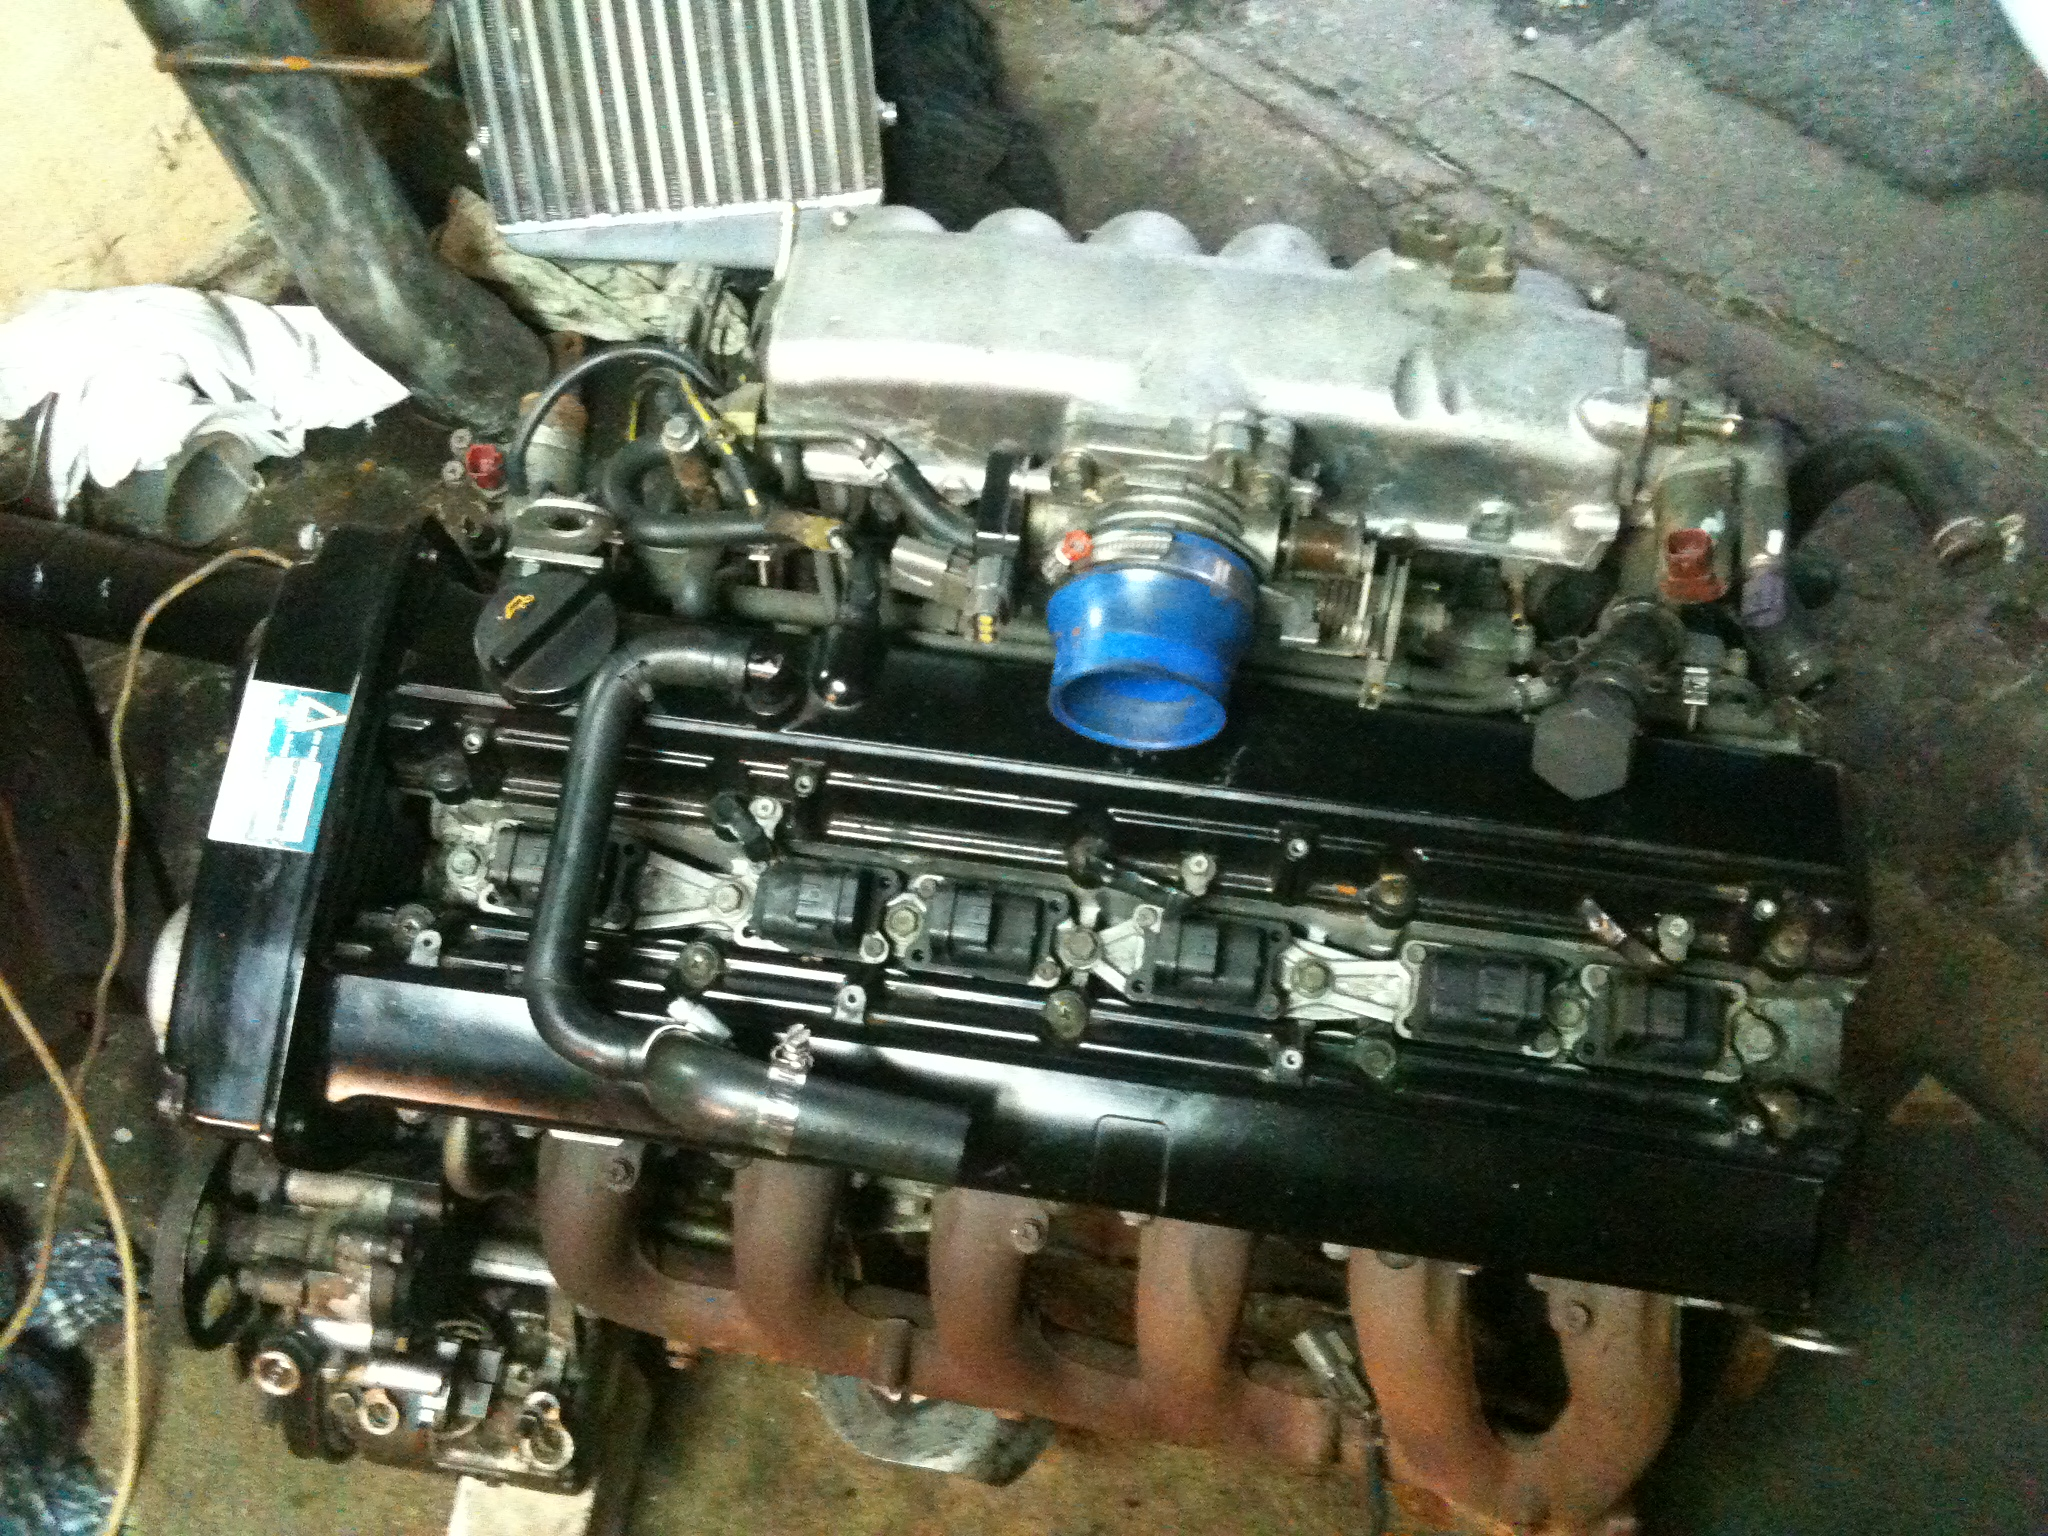 Nissan Rb25De Non Turbo Complete Engine For Sale - For Sale (Private